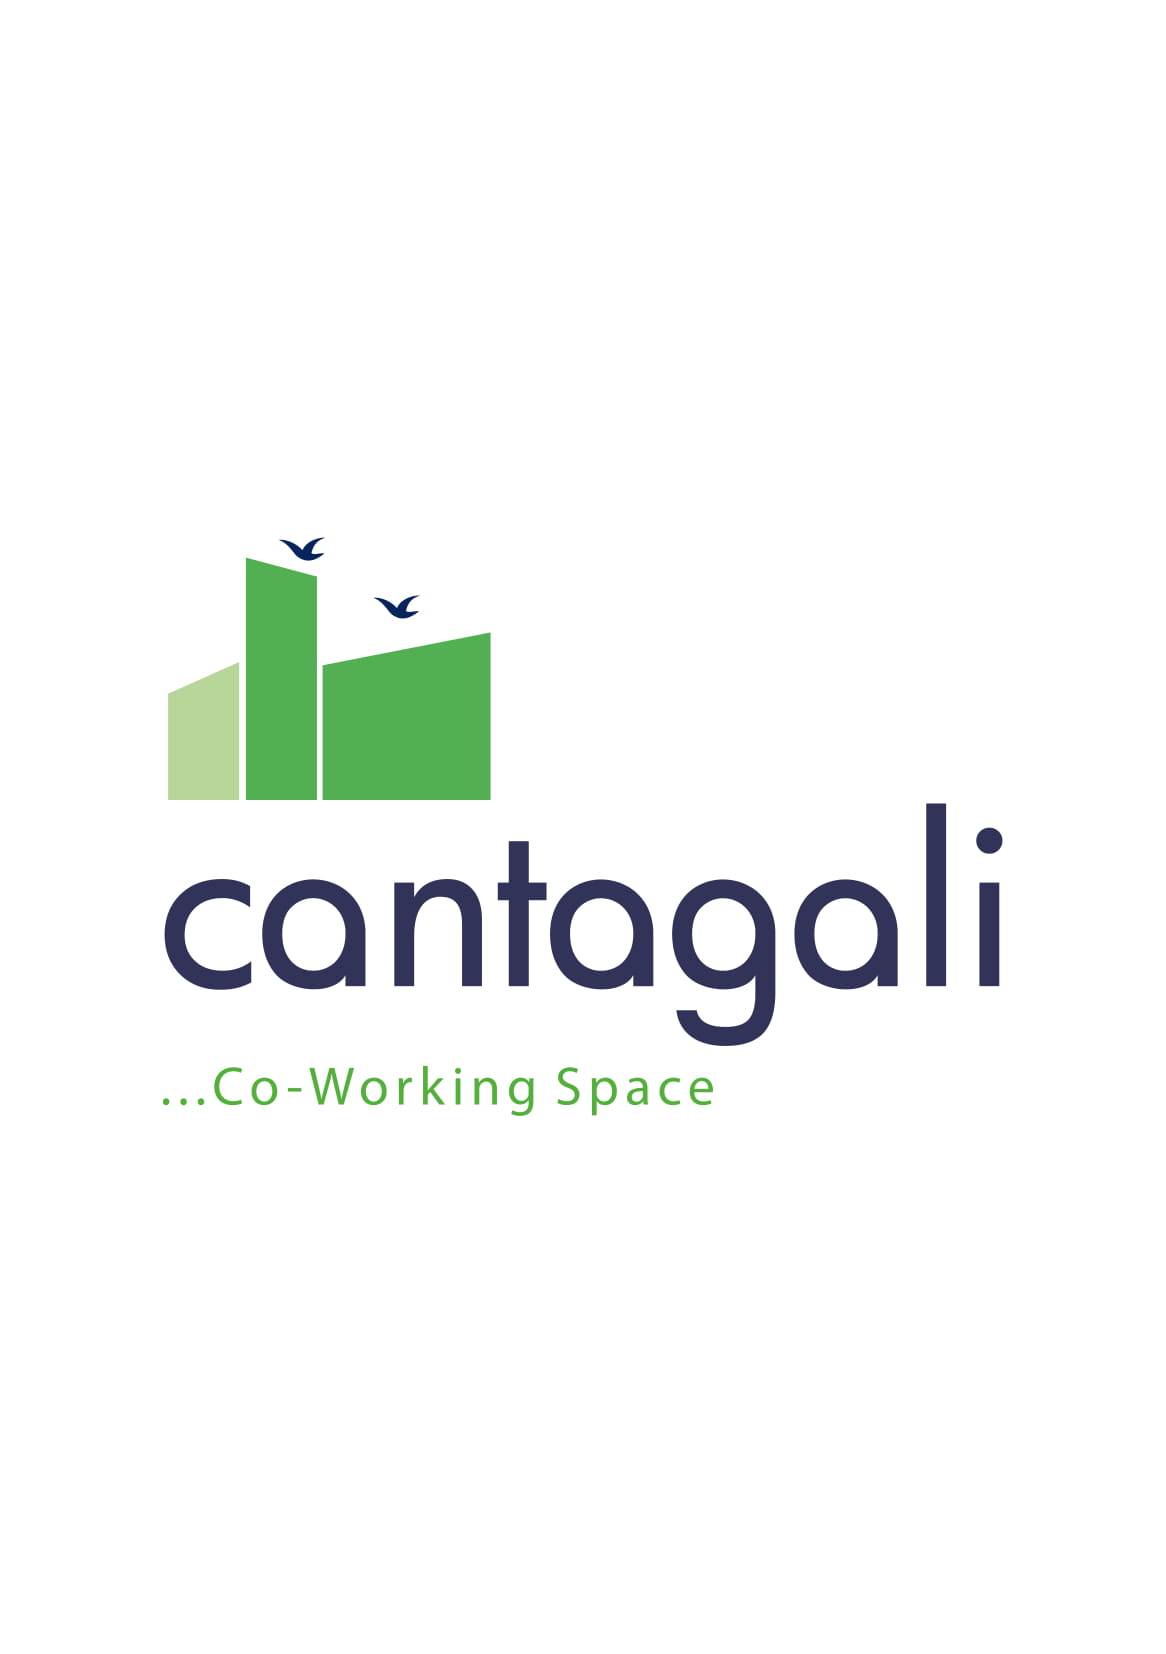 Cantagali Co-working Space, Lagos